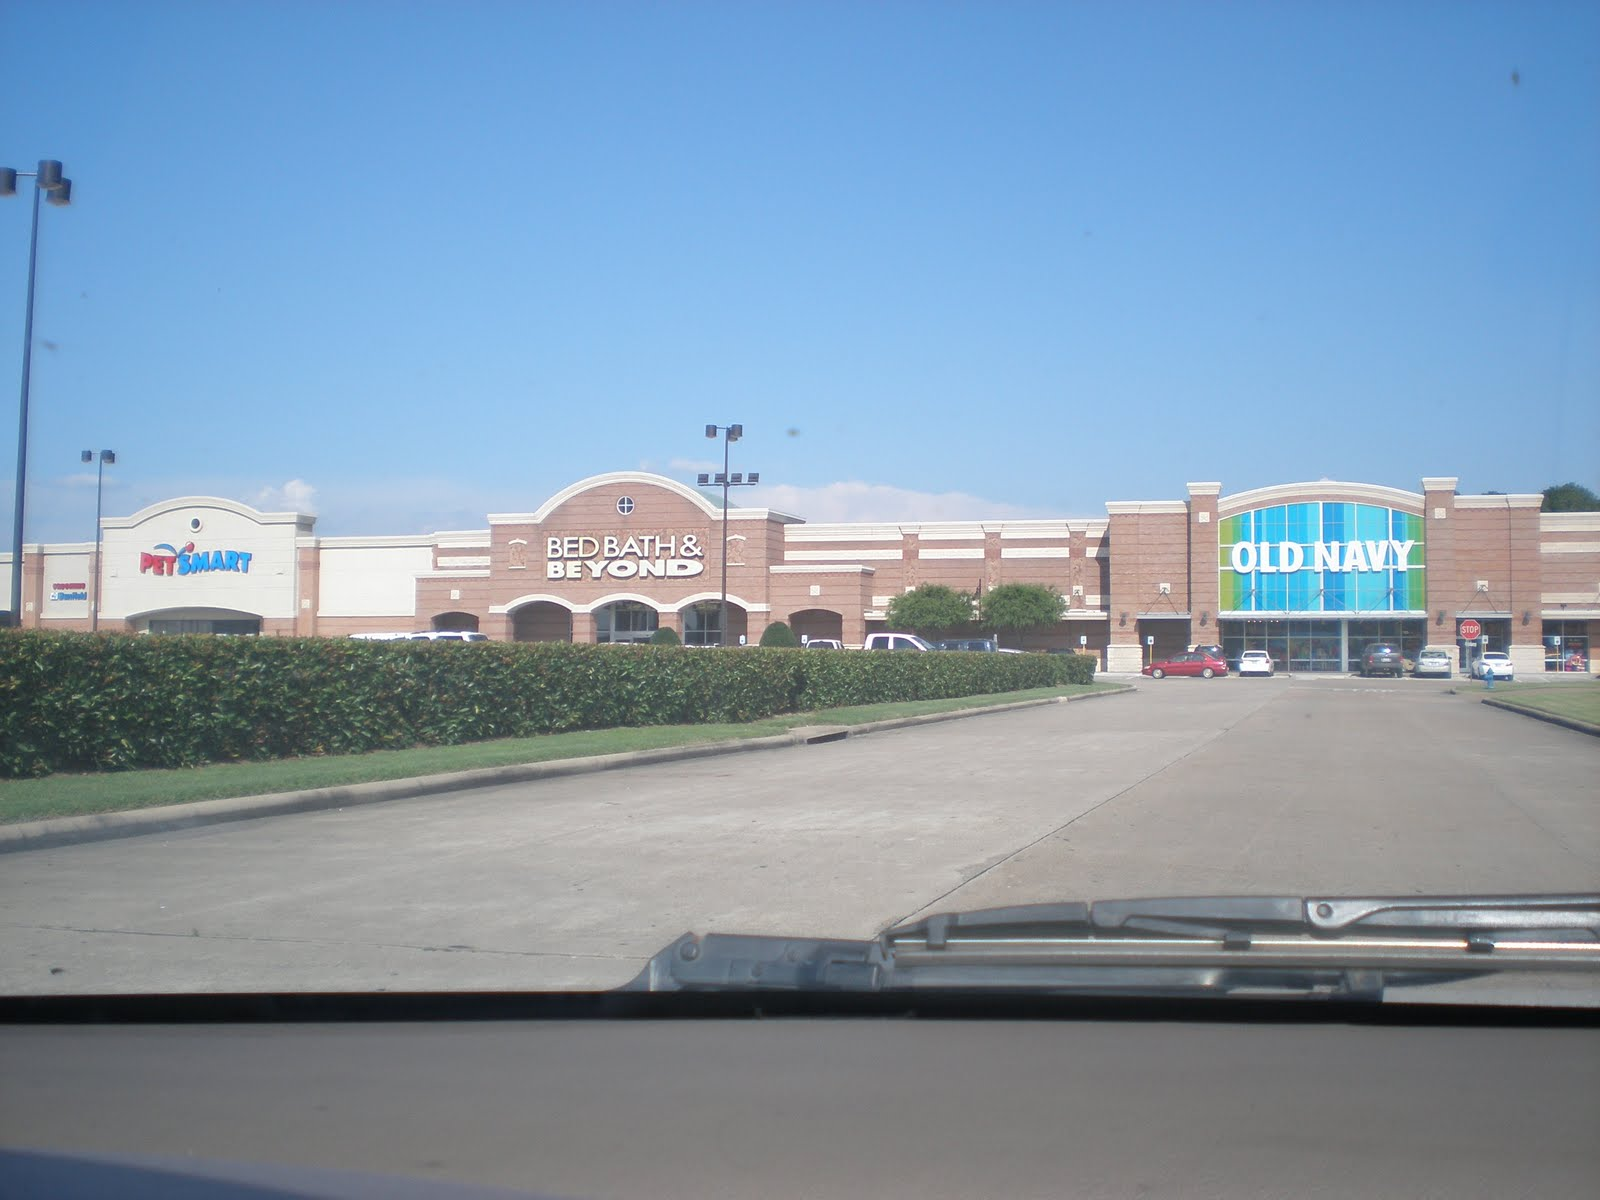 Bed bath and beyond beaumont - Louisiana And Texas Southern Malls And Retail